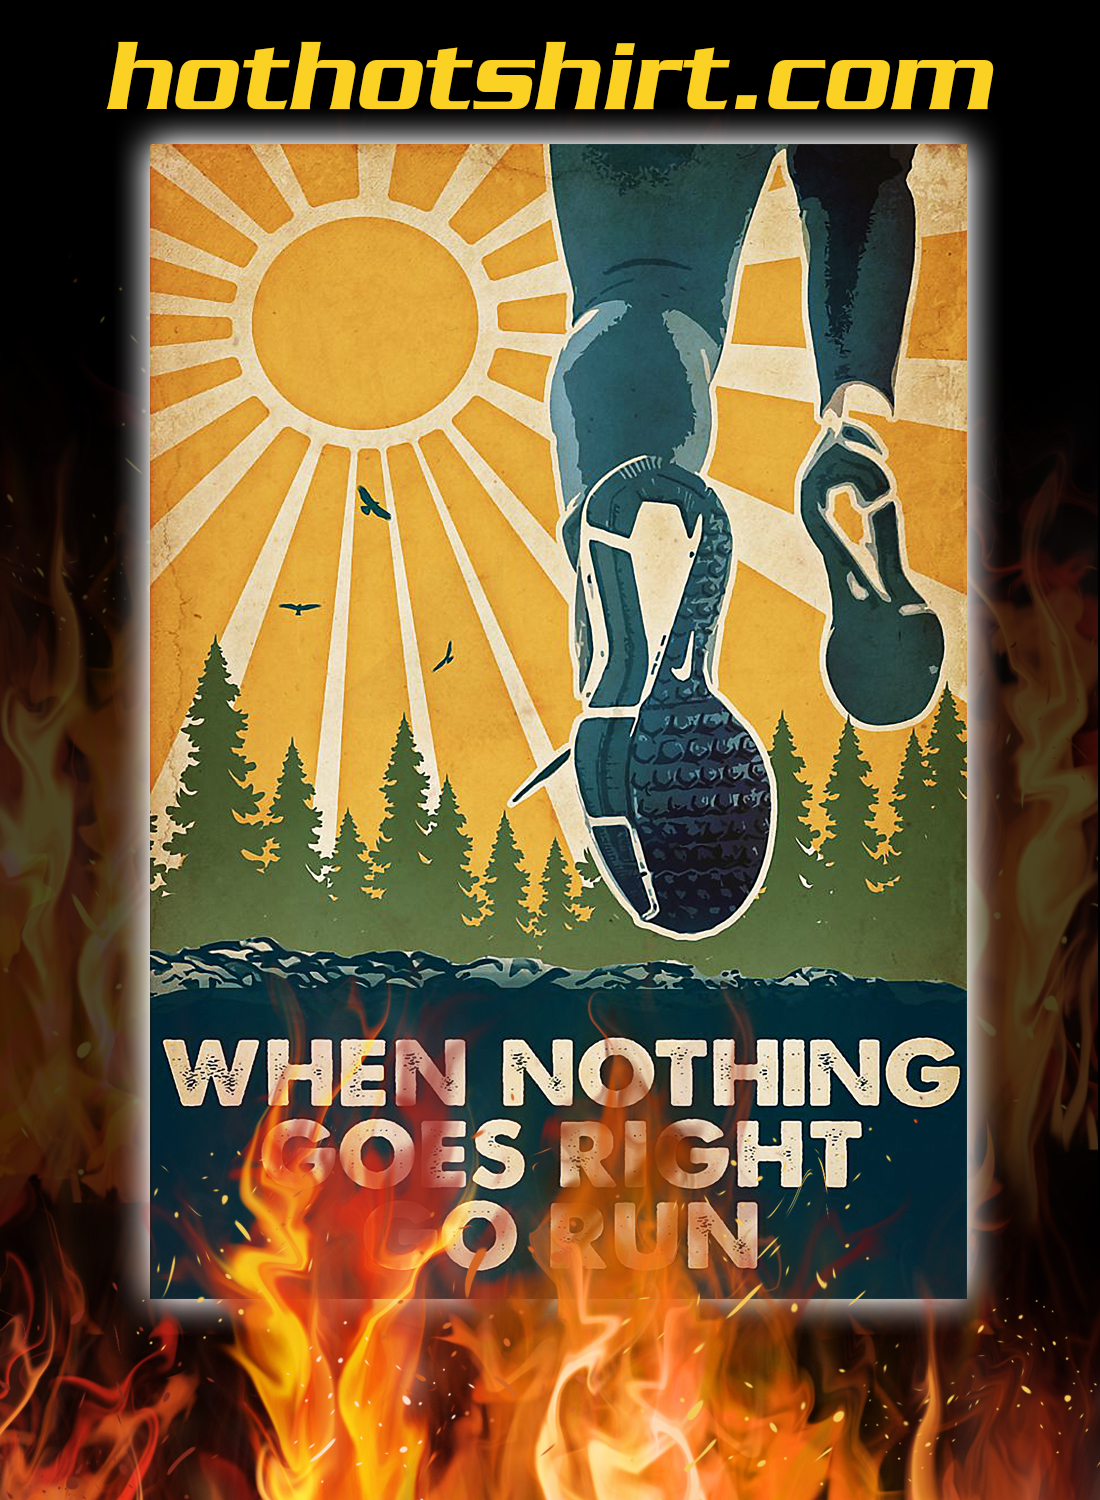 Running When nothing goes right go run poster 3